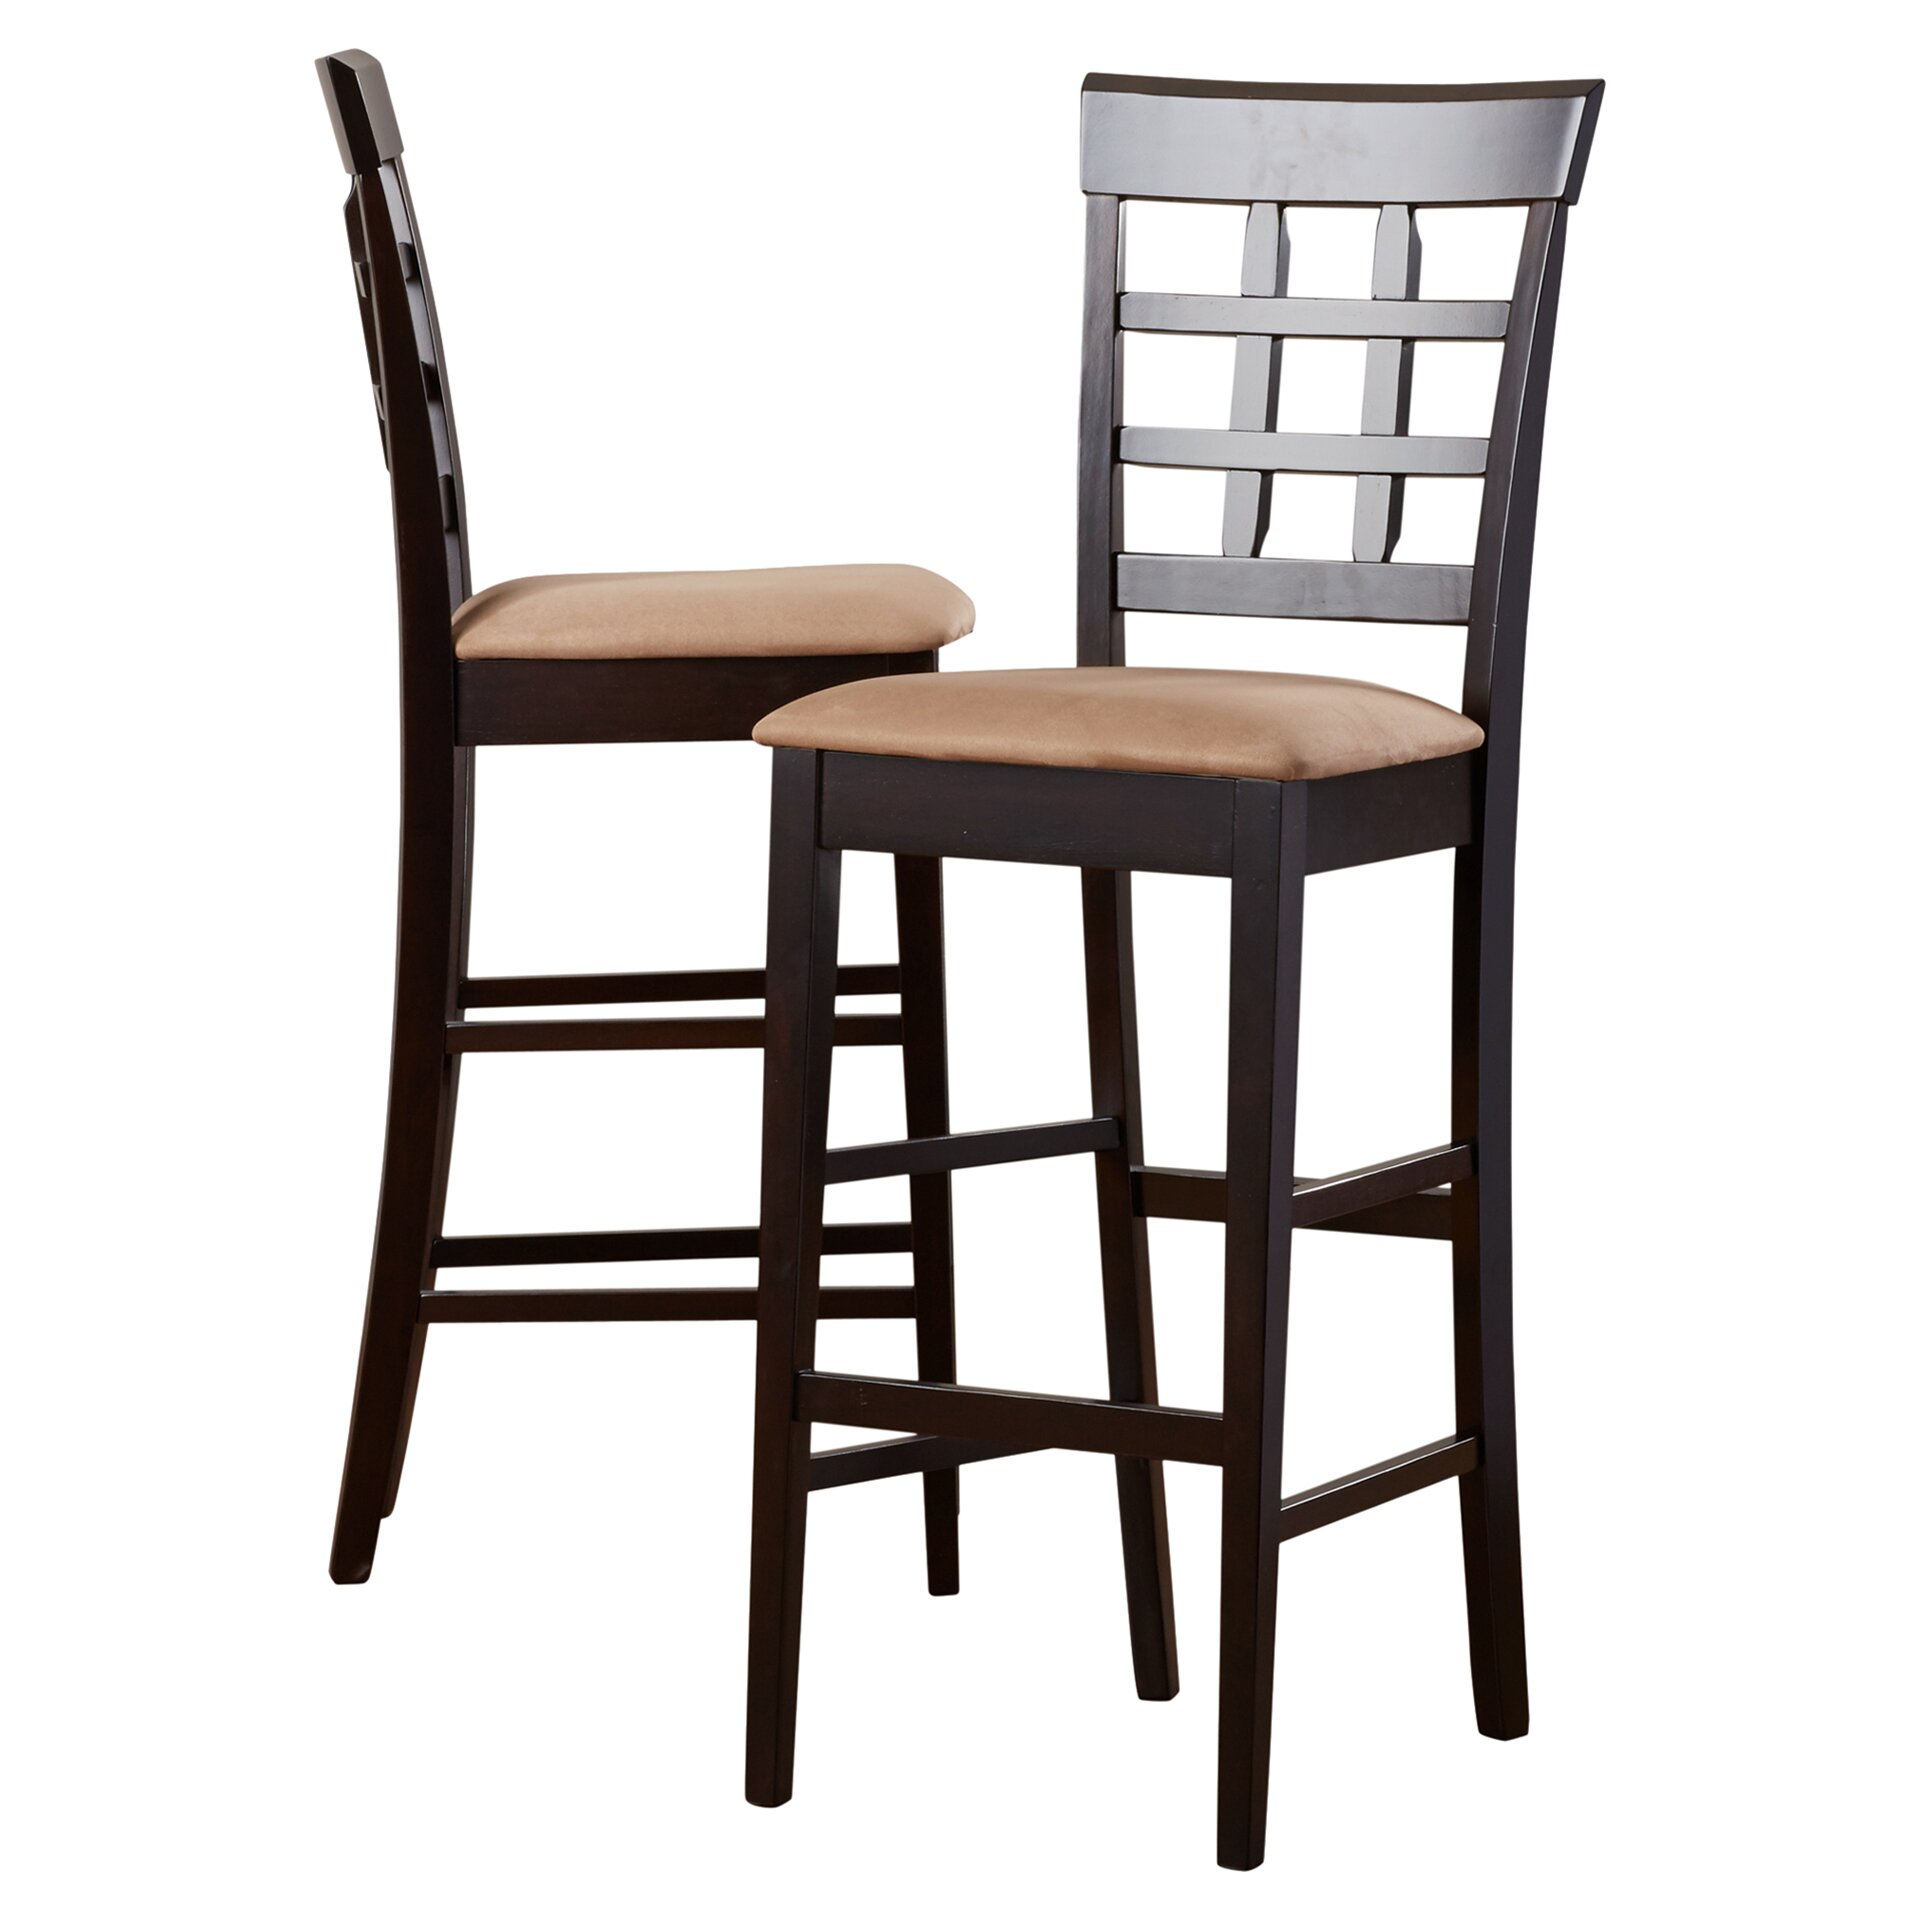 Andover Mills Winslow 31quot Bar Stool amp Reviews Wayfair : Winslow 30 Bar Stool with Cushion ANDO2152 from www.wayfair.com size 1920 x 1920 jpeg 229kB